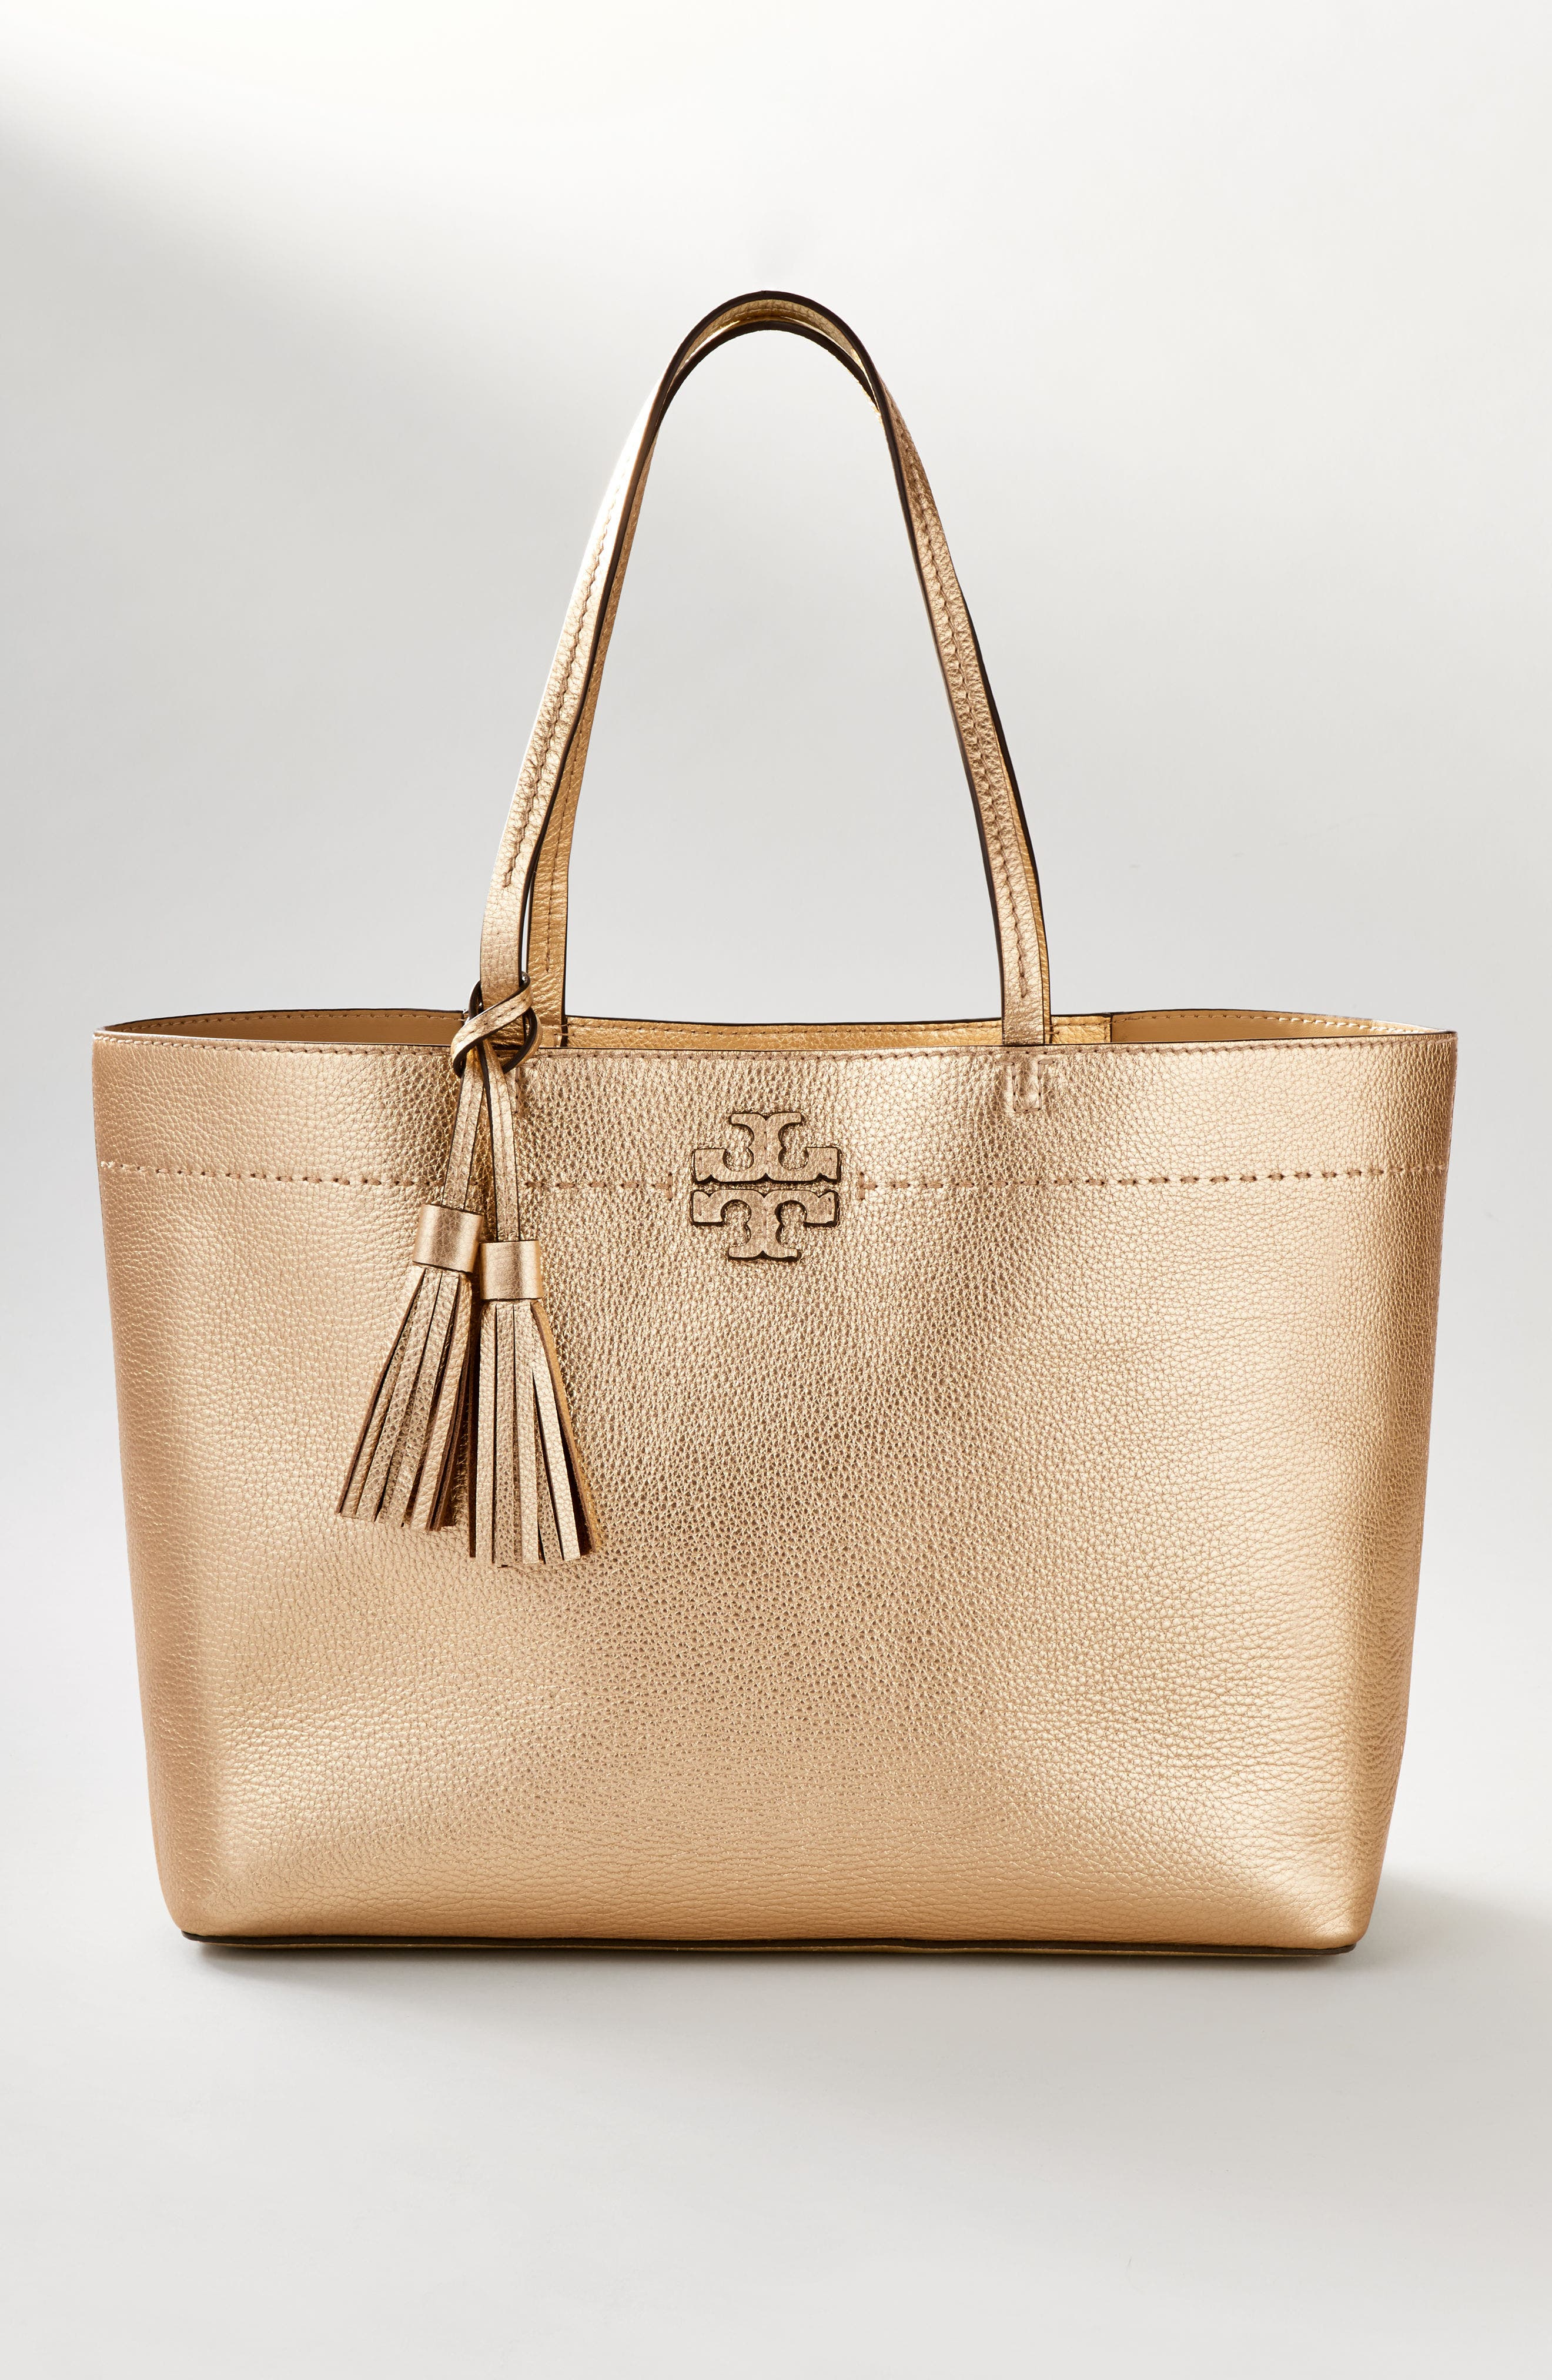 TORY BURCH, McGraw Leather Laptop Tote, Alternate thumbnail 10, color, BLACK/ ROYAL NAVY